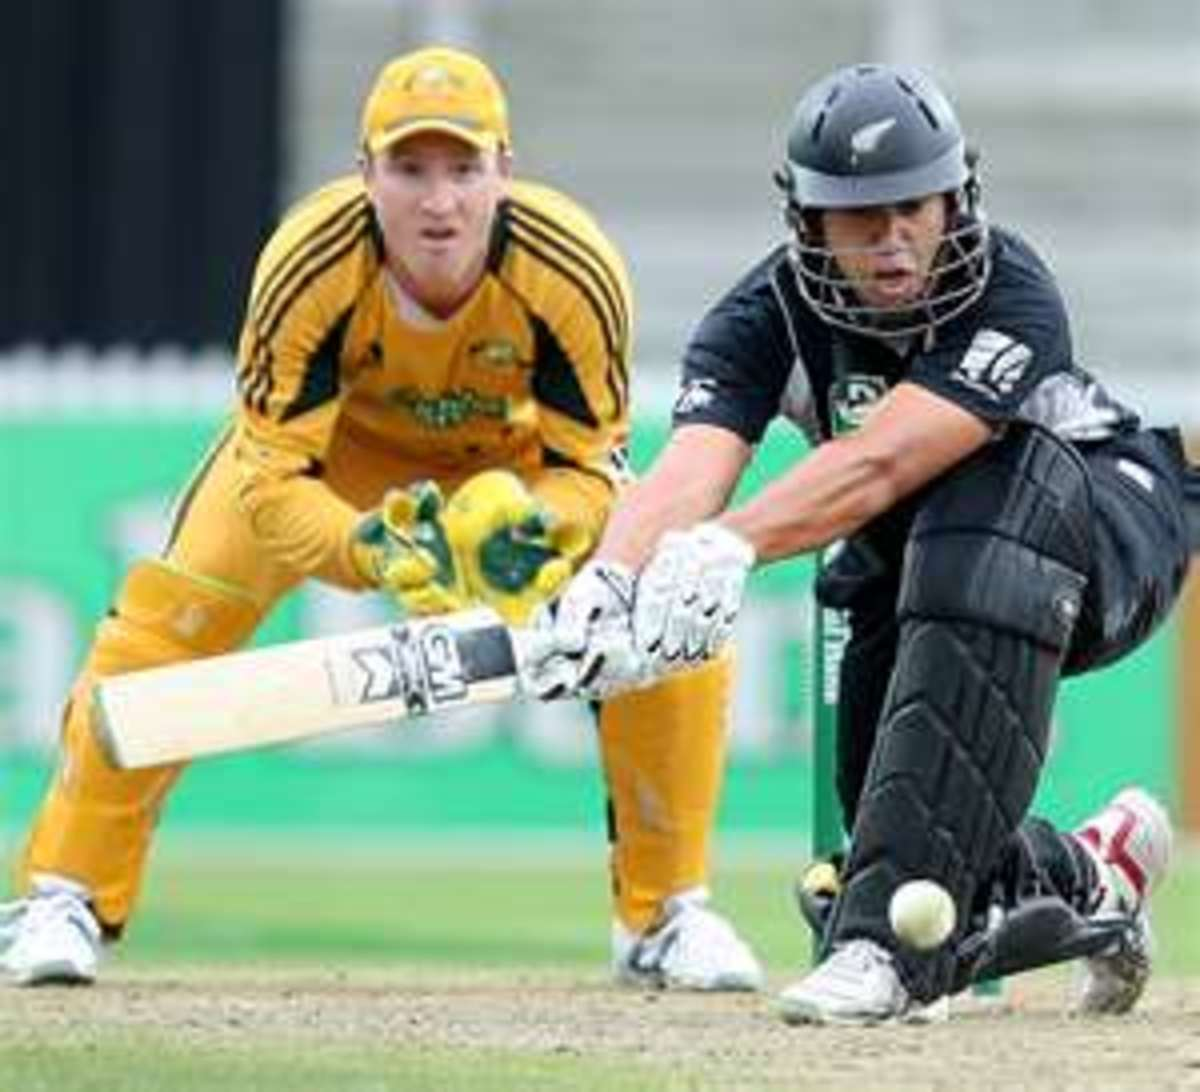 An ODI between Australia and New Zealand